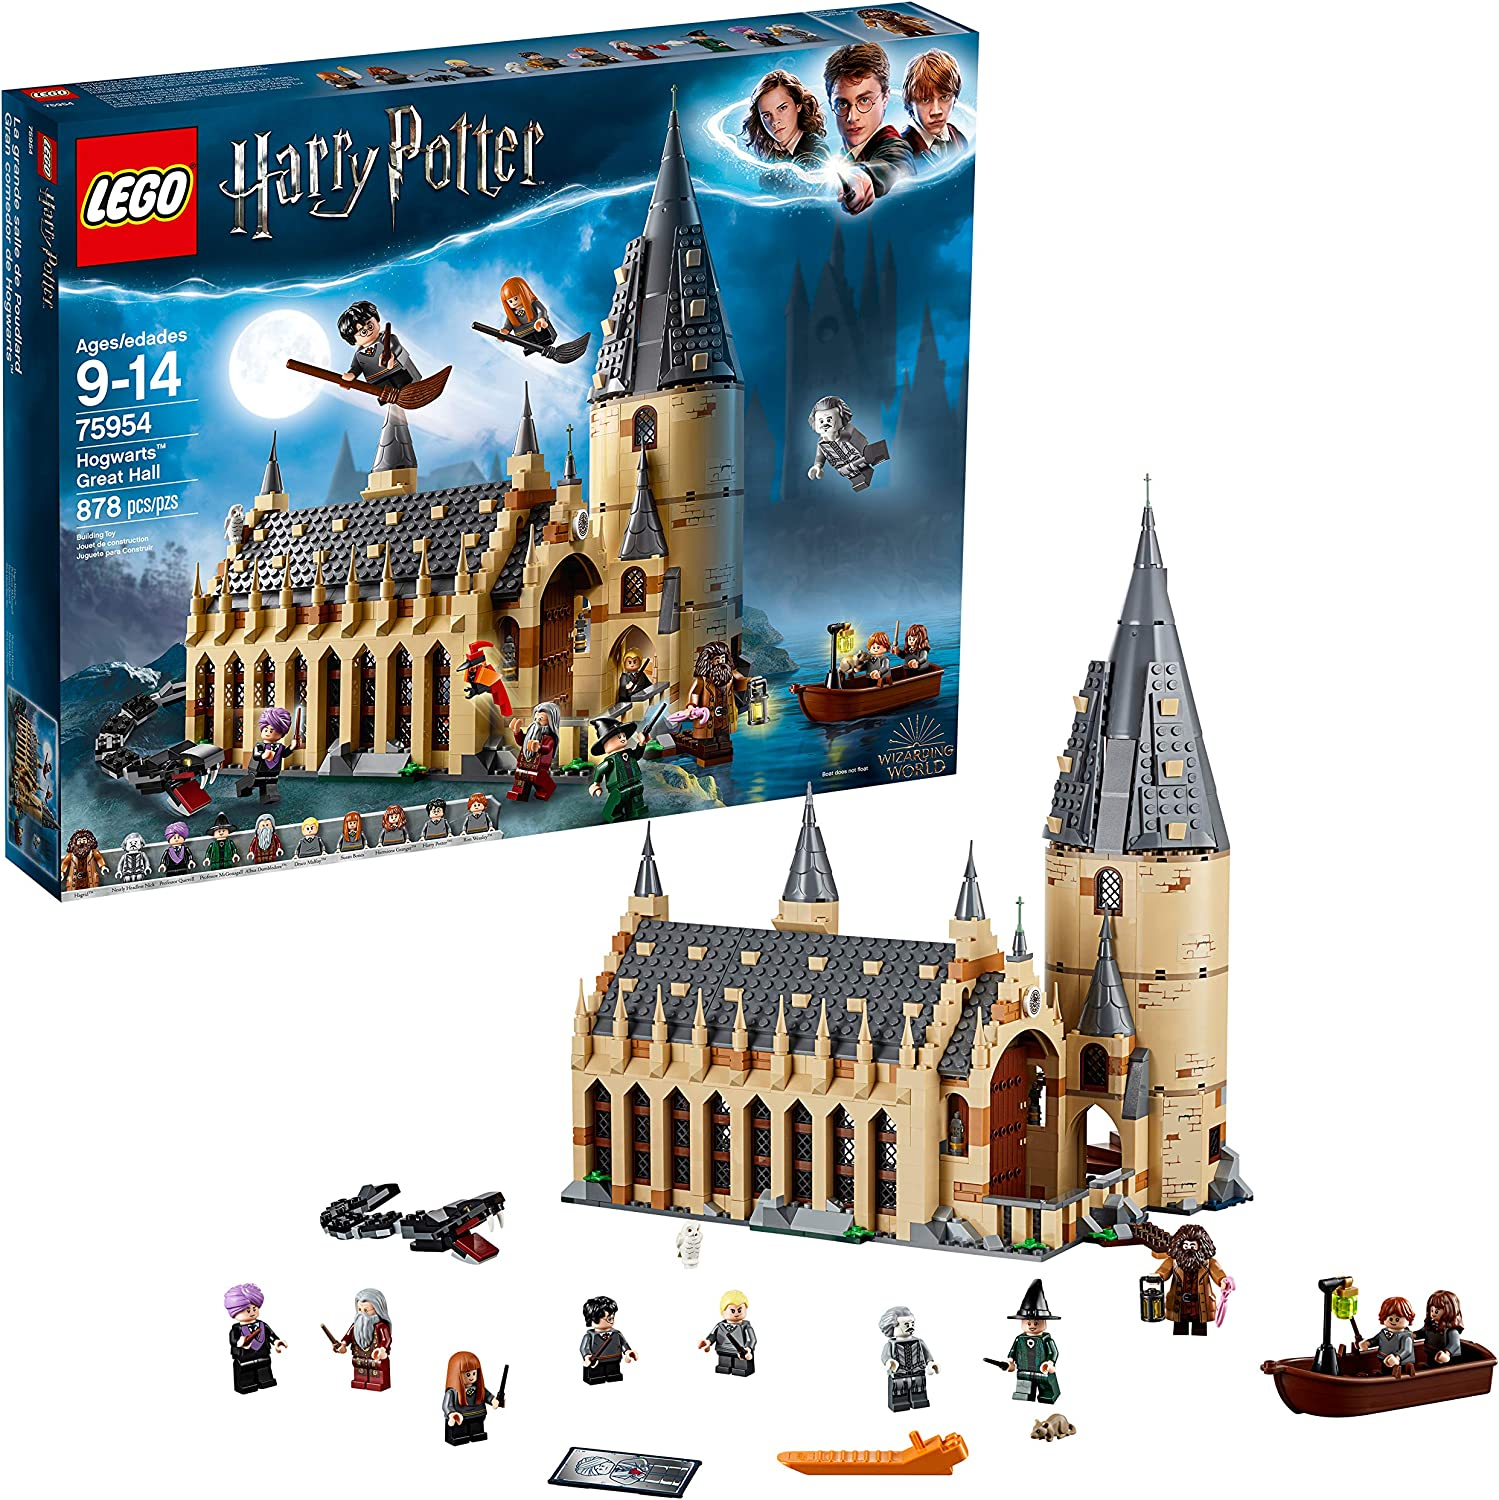 Build the Hogwarts Great Hall with this Harry Potter-themed LEGO set